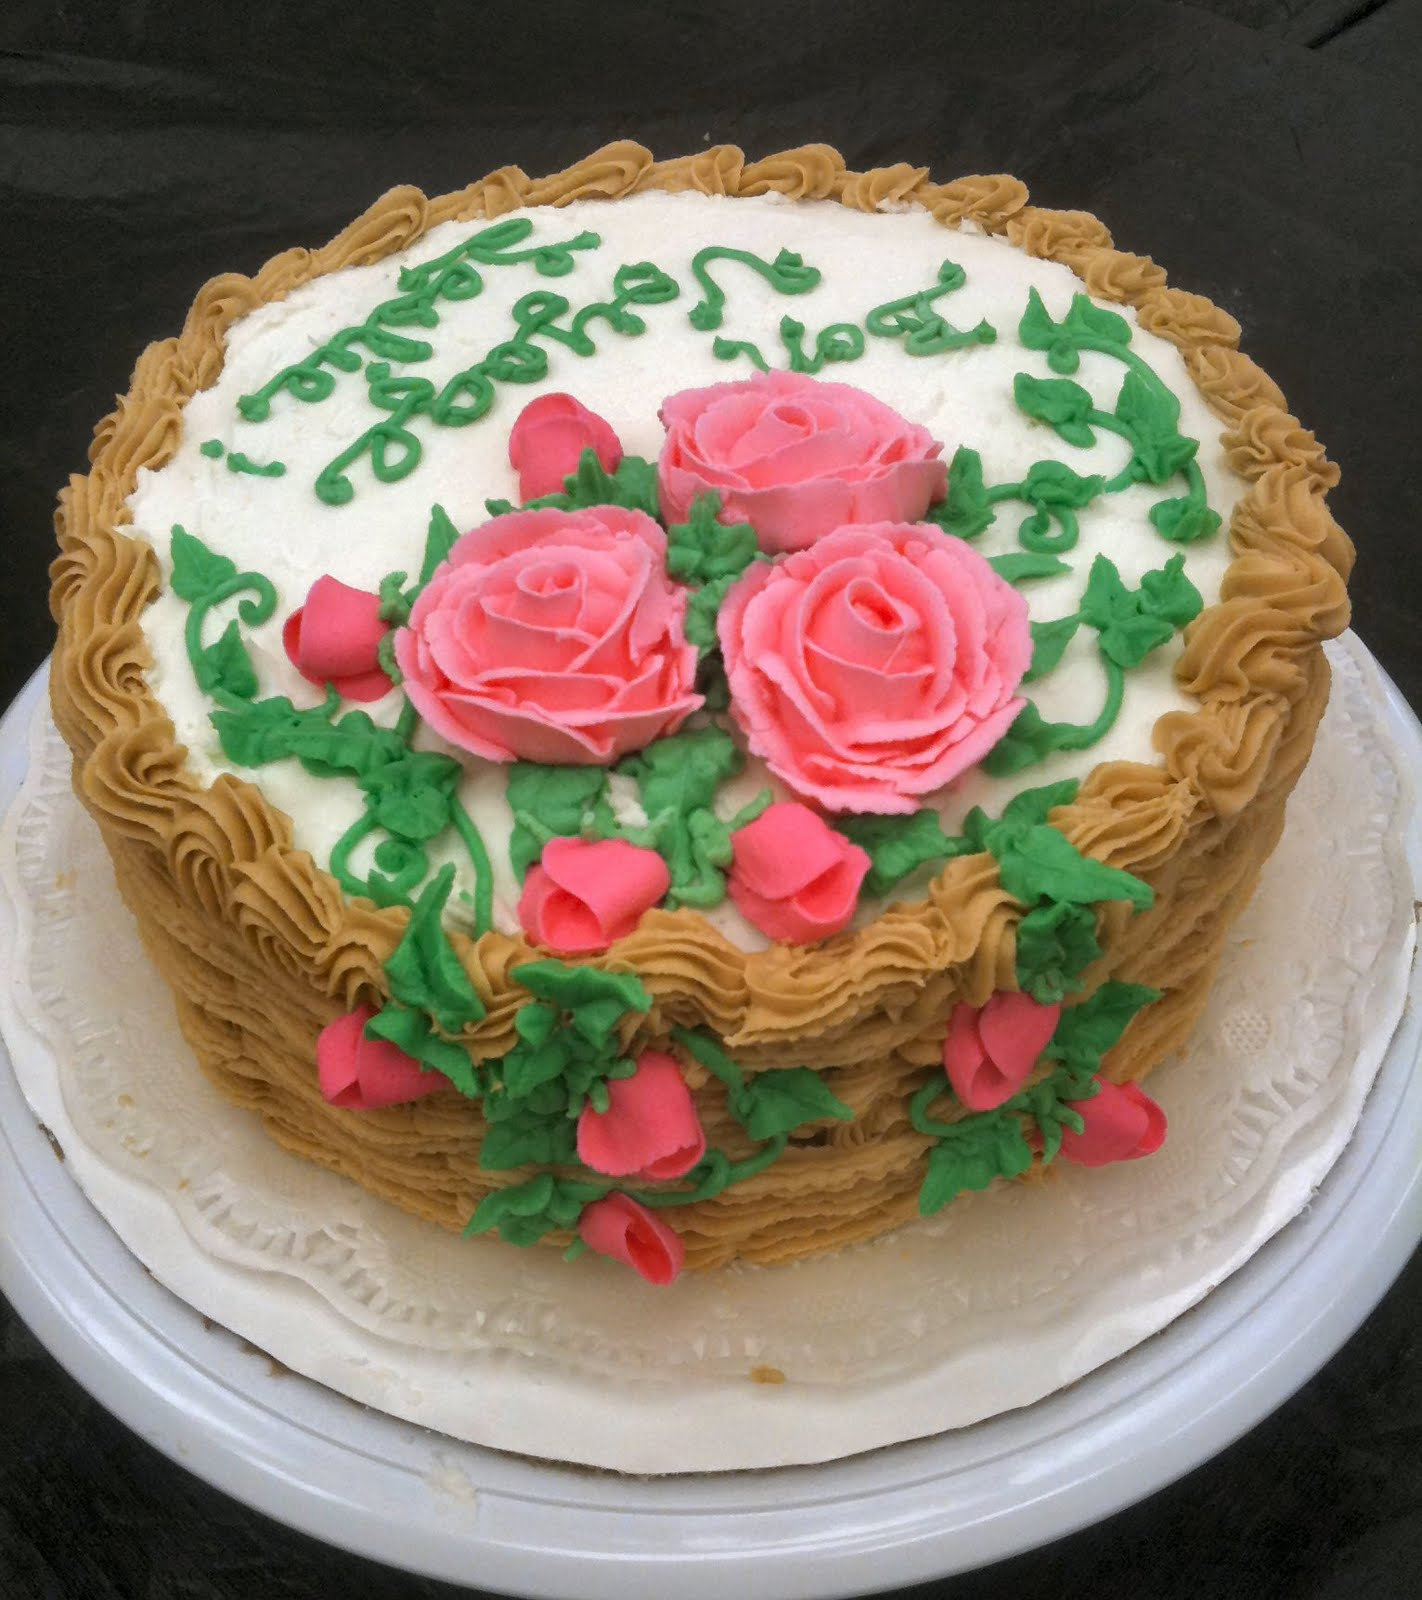 Cake Images Sonia : Cake Decorating by Sonia: June 2011 - Course 2 Flowers ...